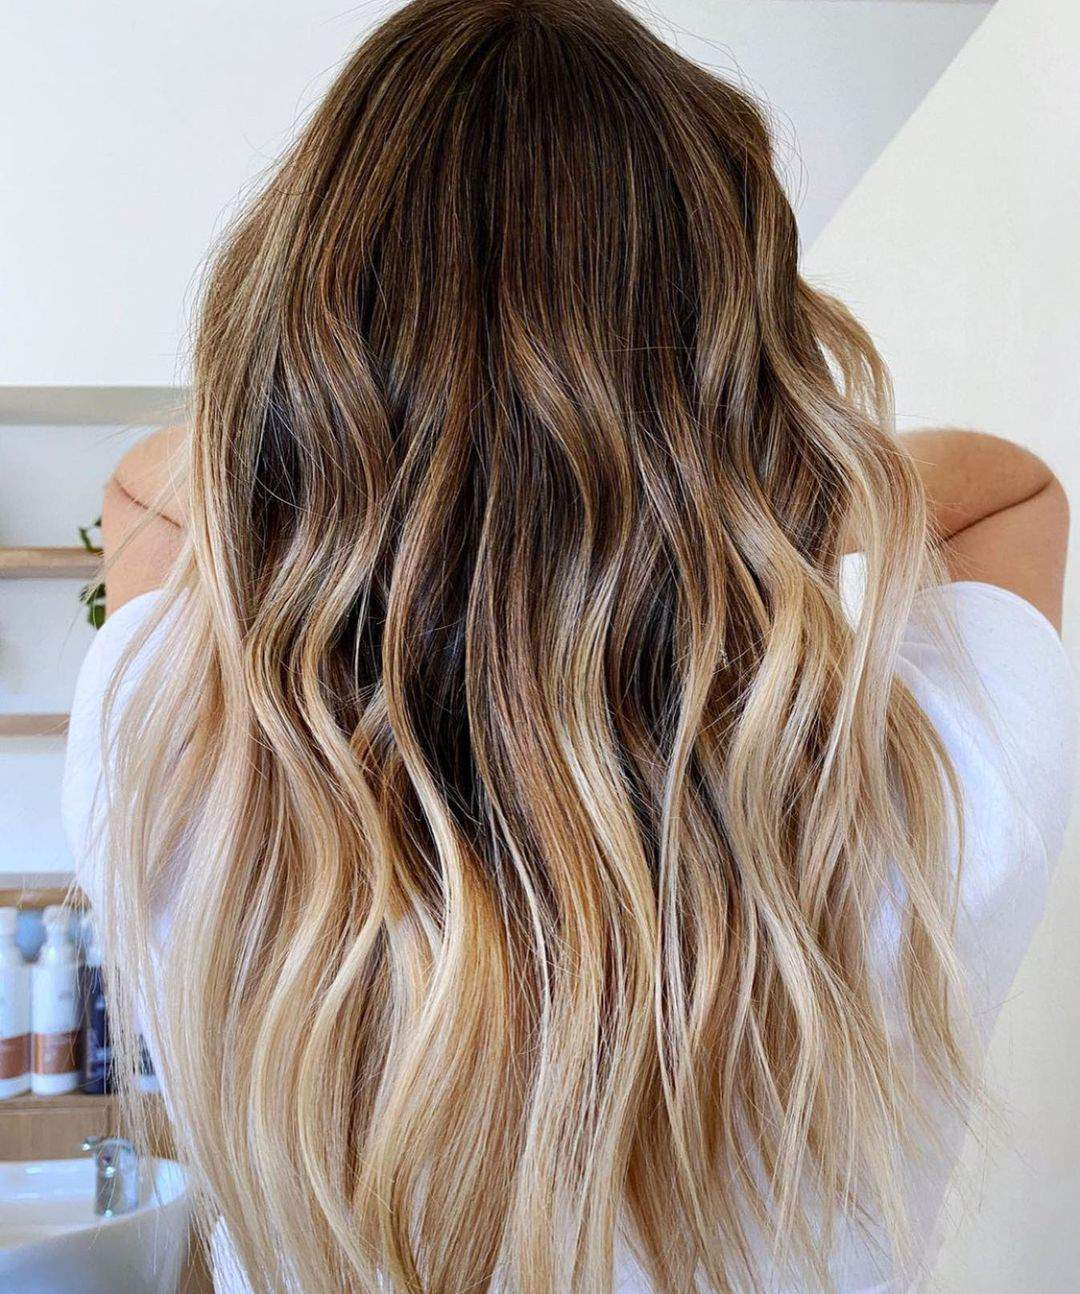 40+ Awesome Hairstyles For Girls With Long Hair images 4